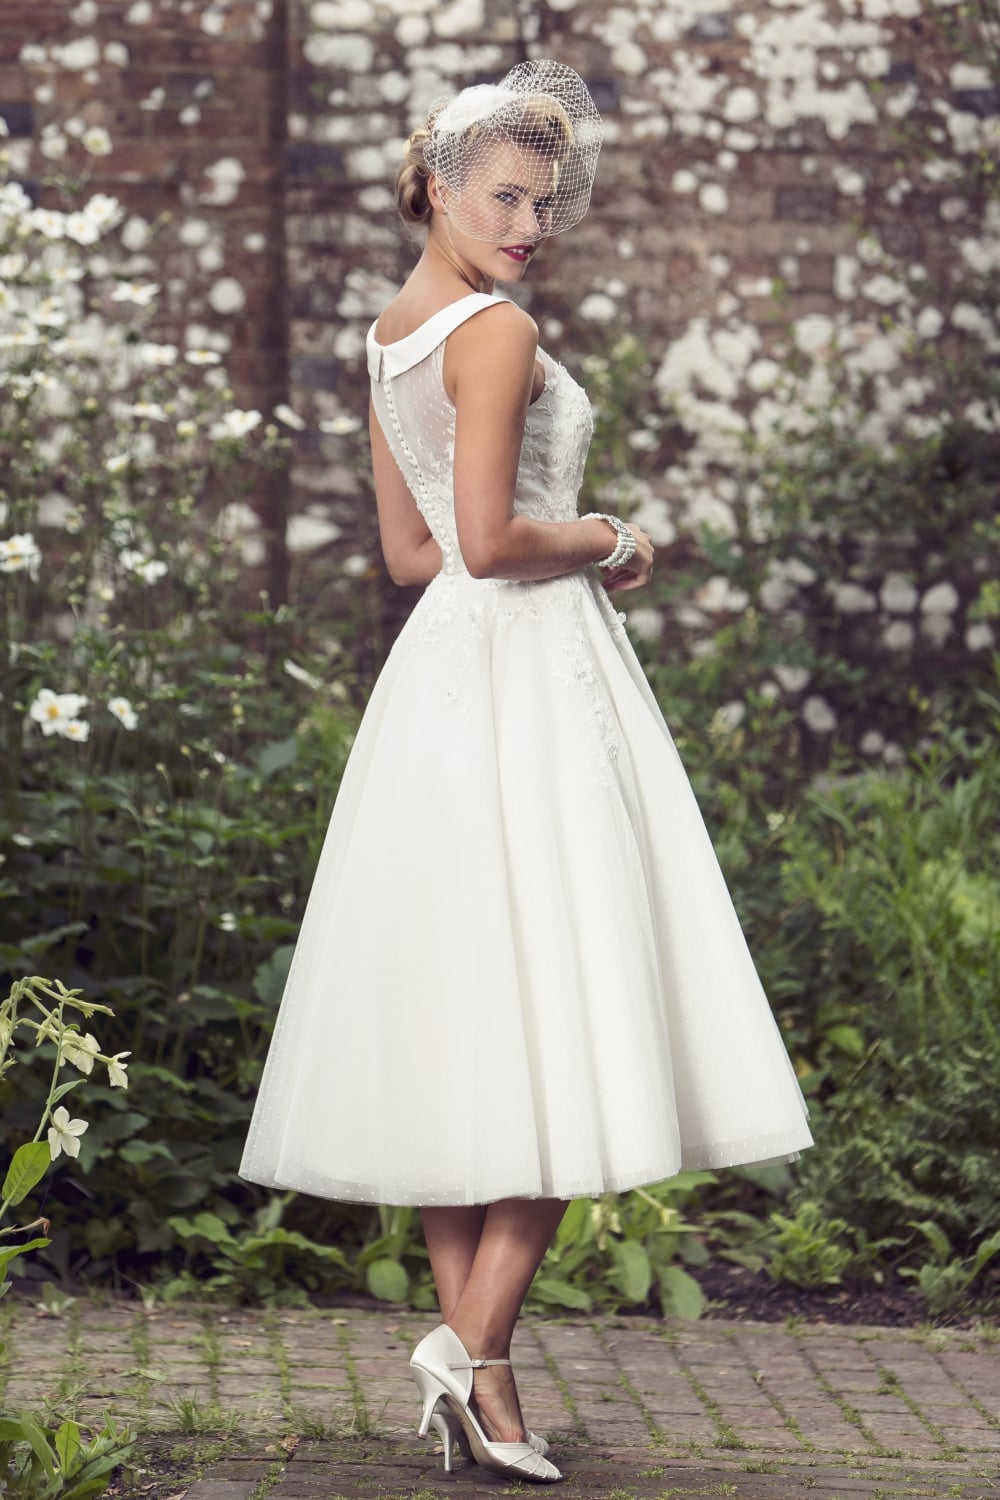 Audrey hepburn style bridesmaid dress